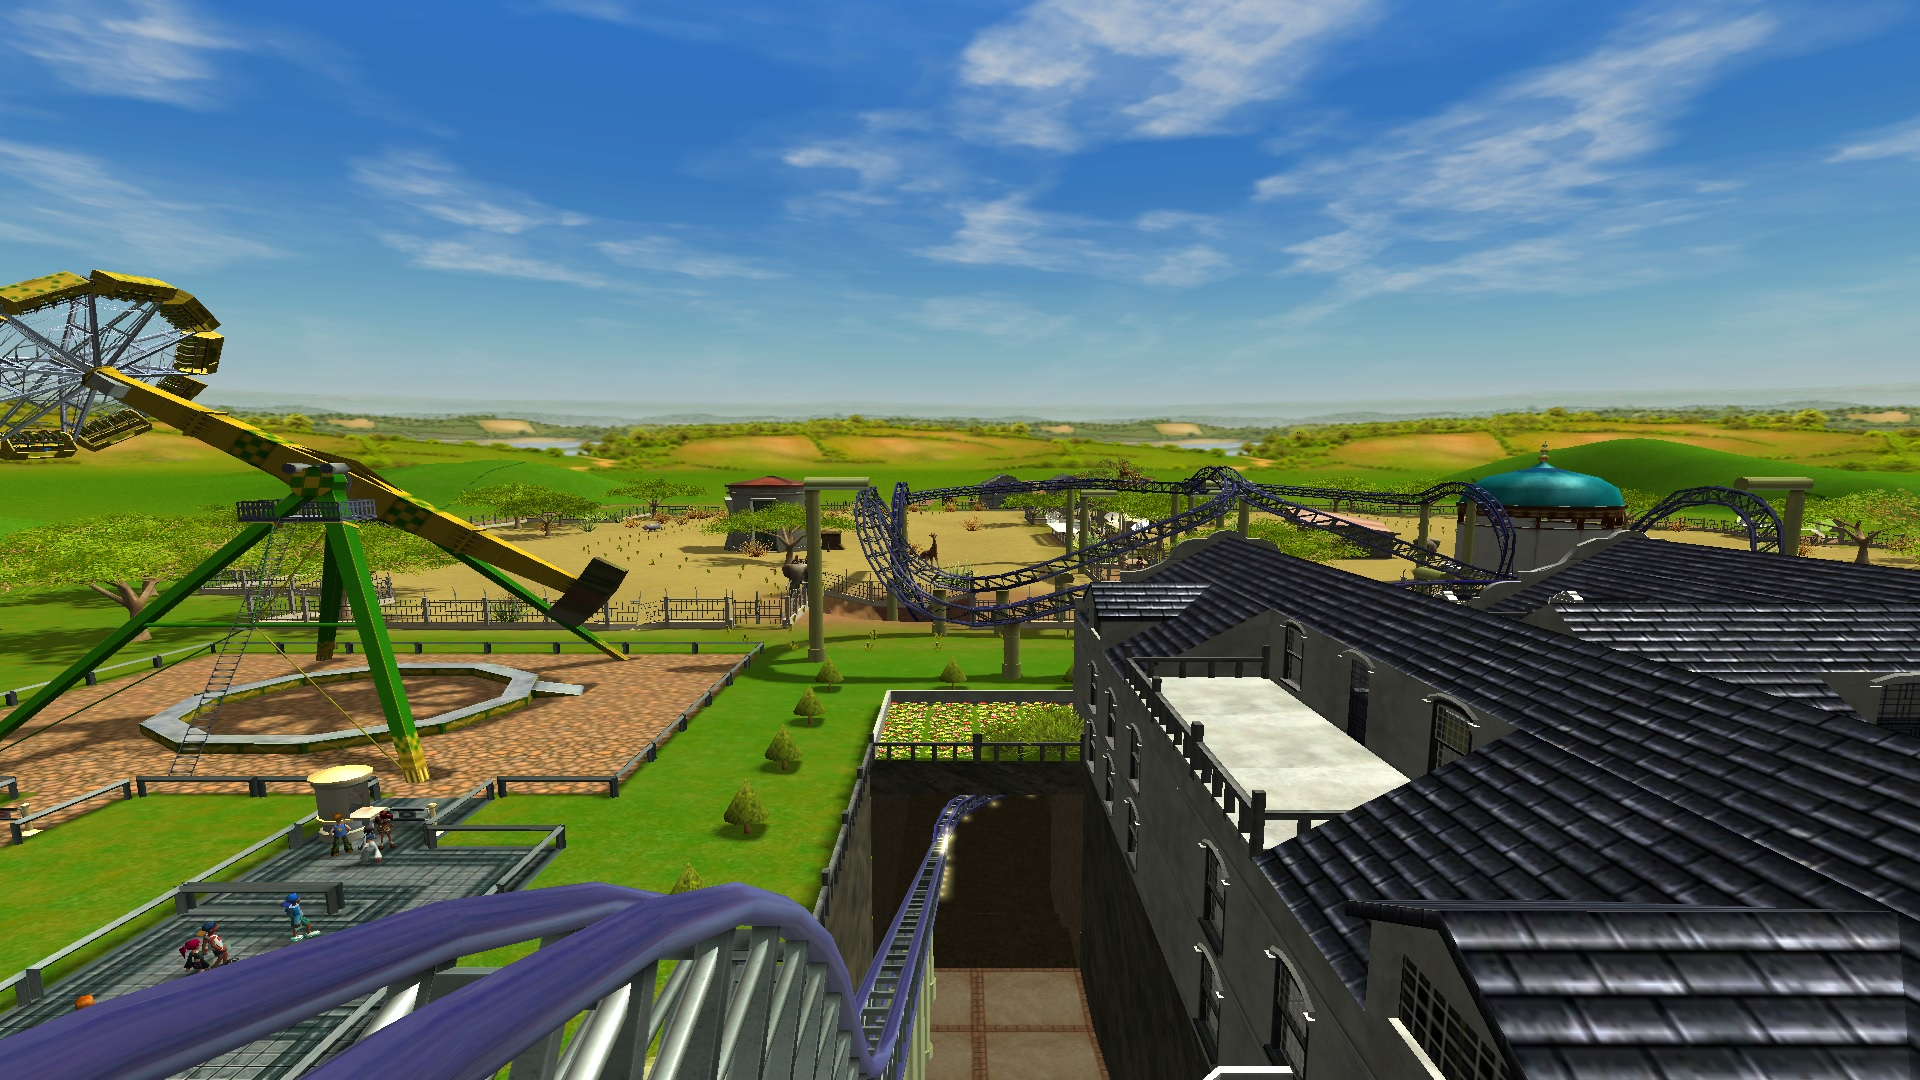 Rollercoaster Tycoon 3 Complete Edition: Is it worth it?